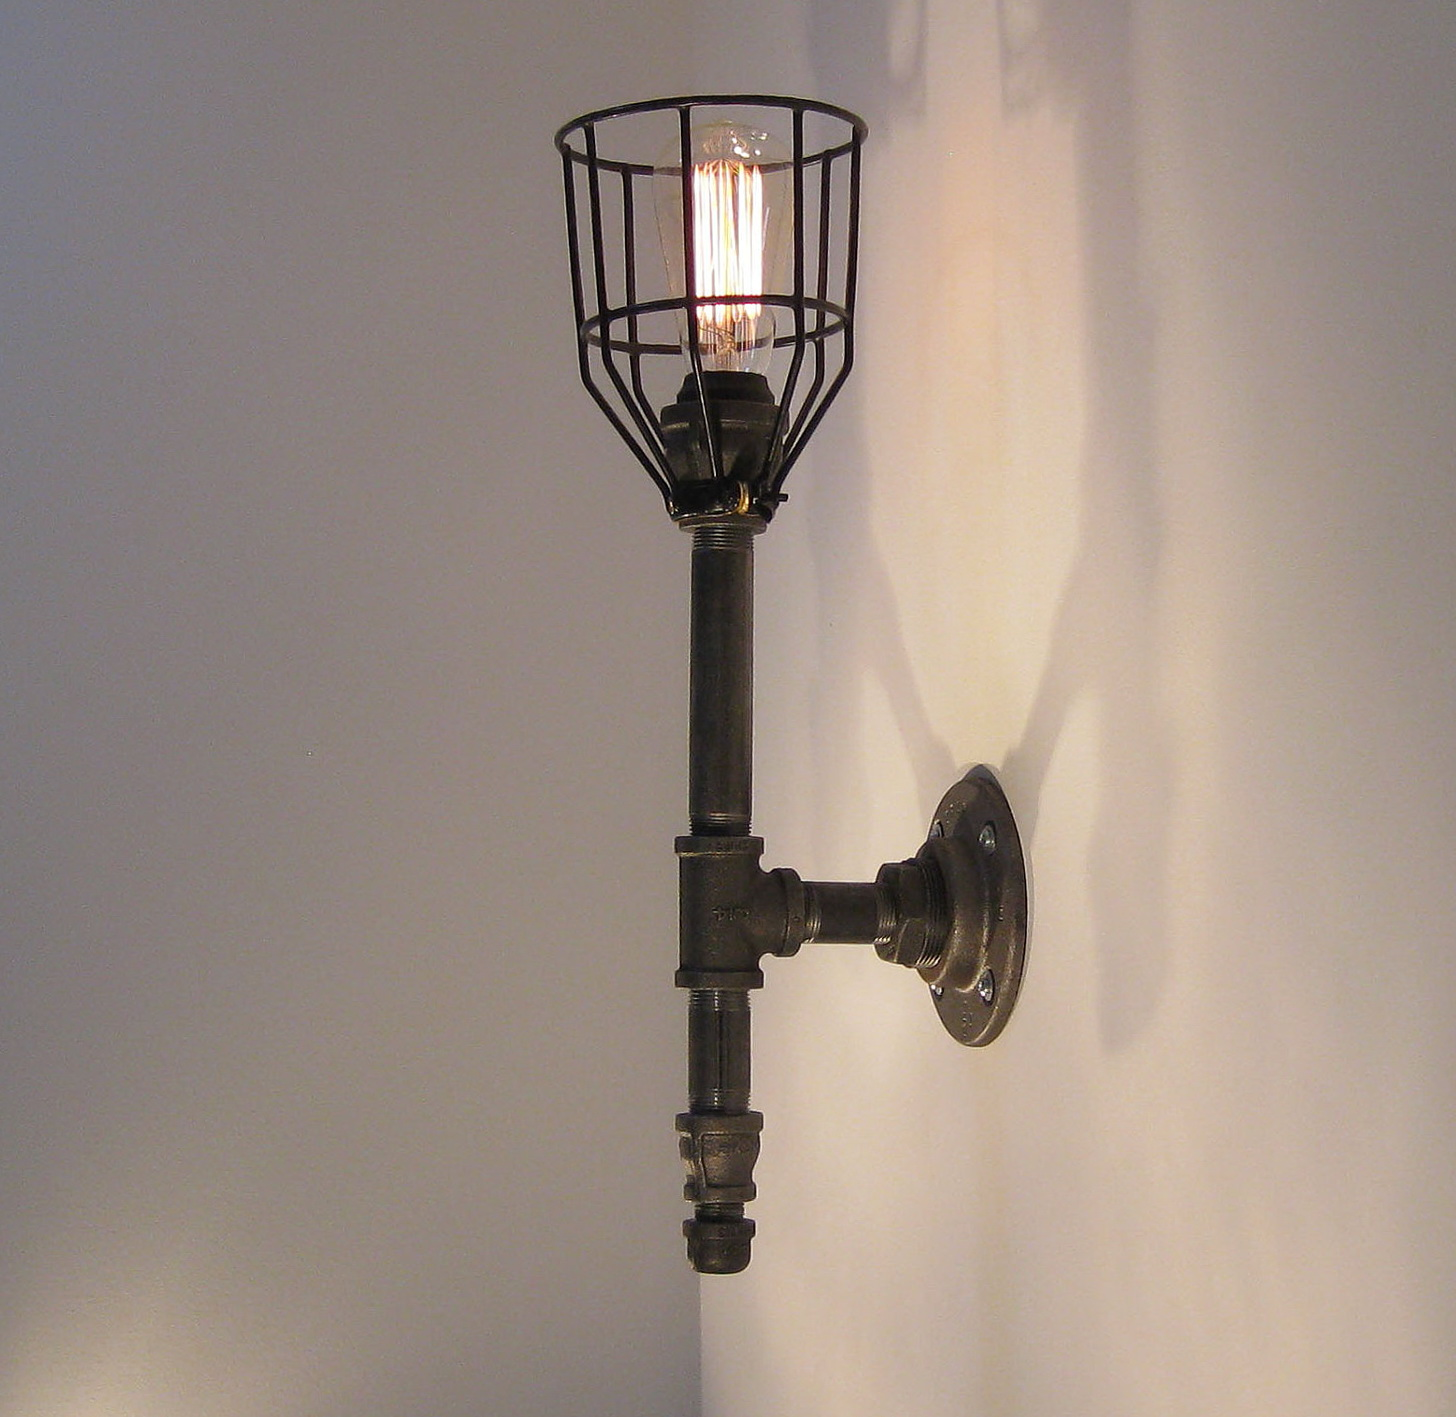 Black Iron Wall Sconces : black iron sconces - www.canuckmediamonitor.org